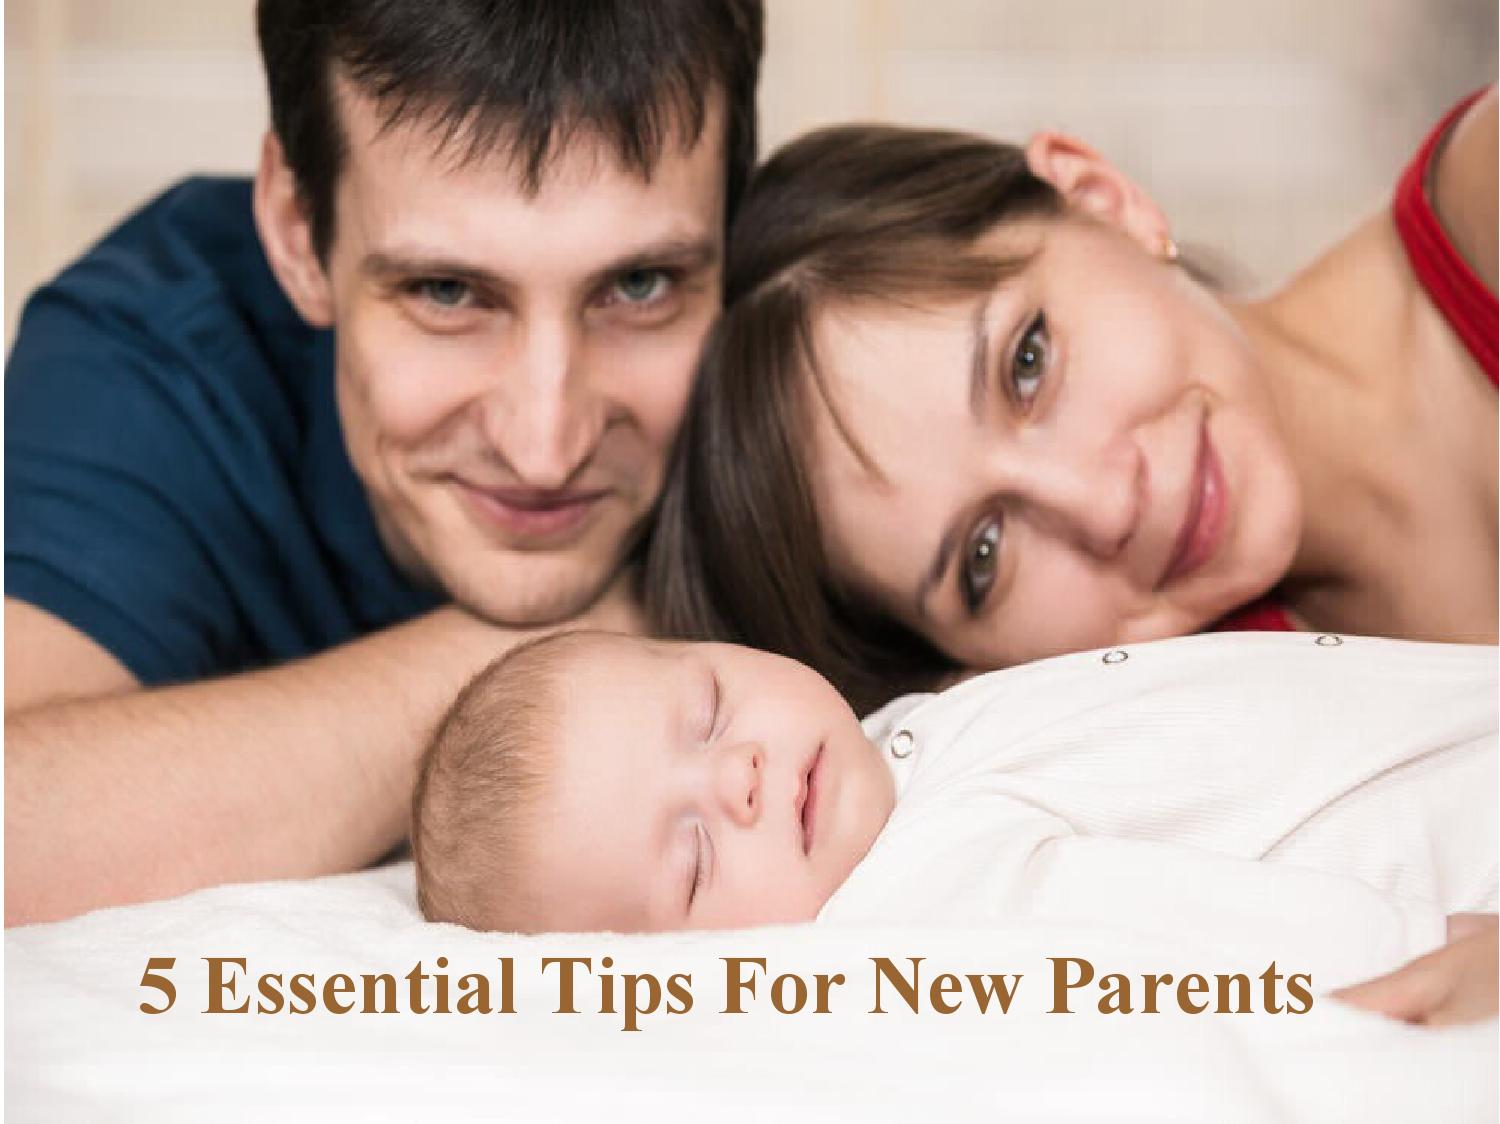 5 Essential Tips For New Parents by loaferchris